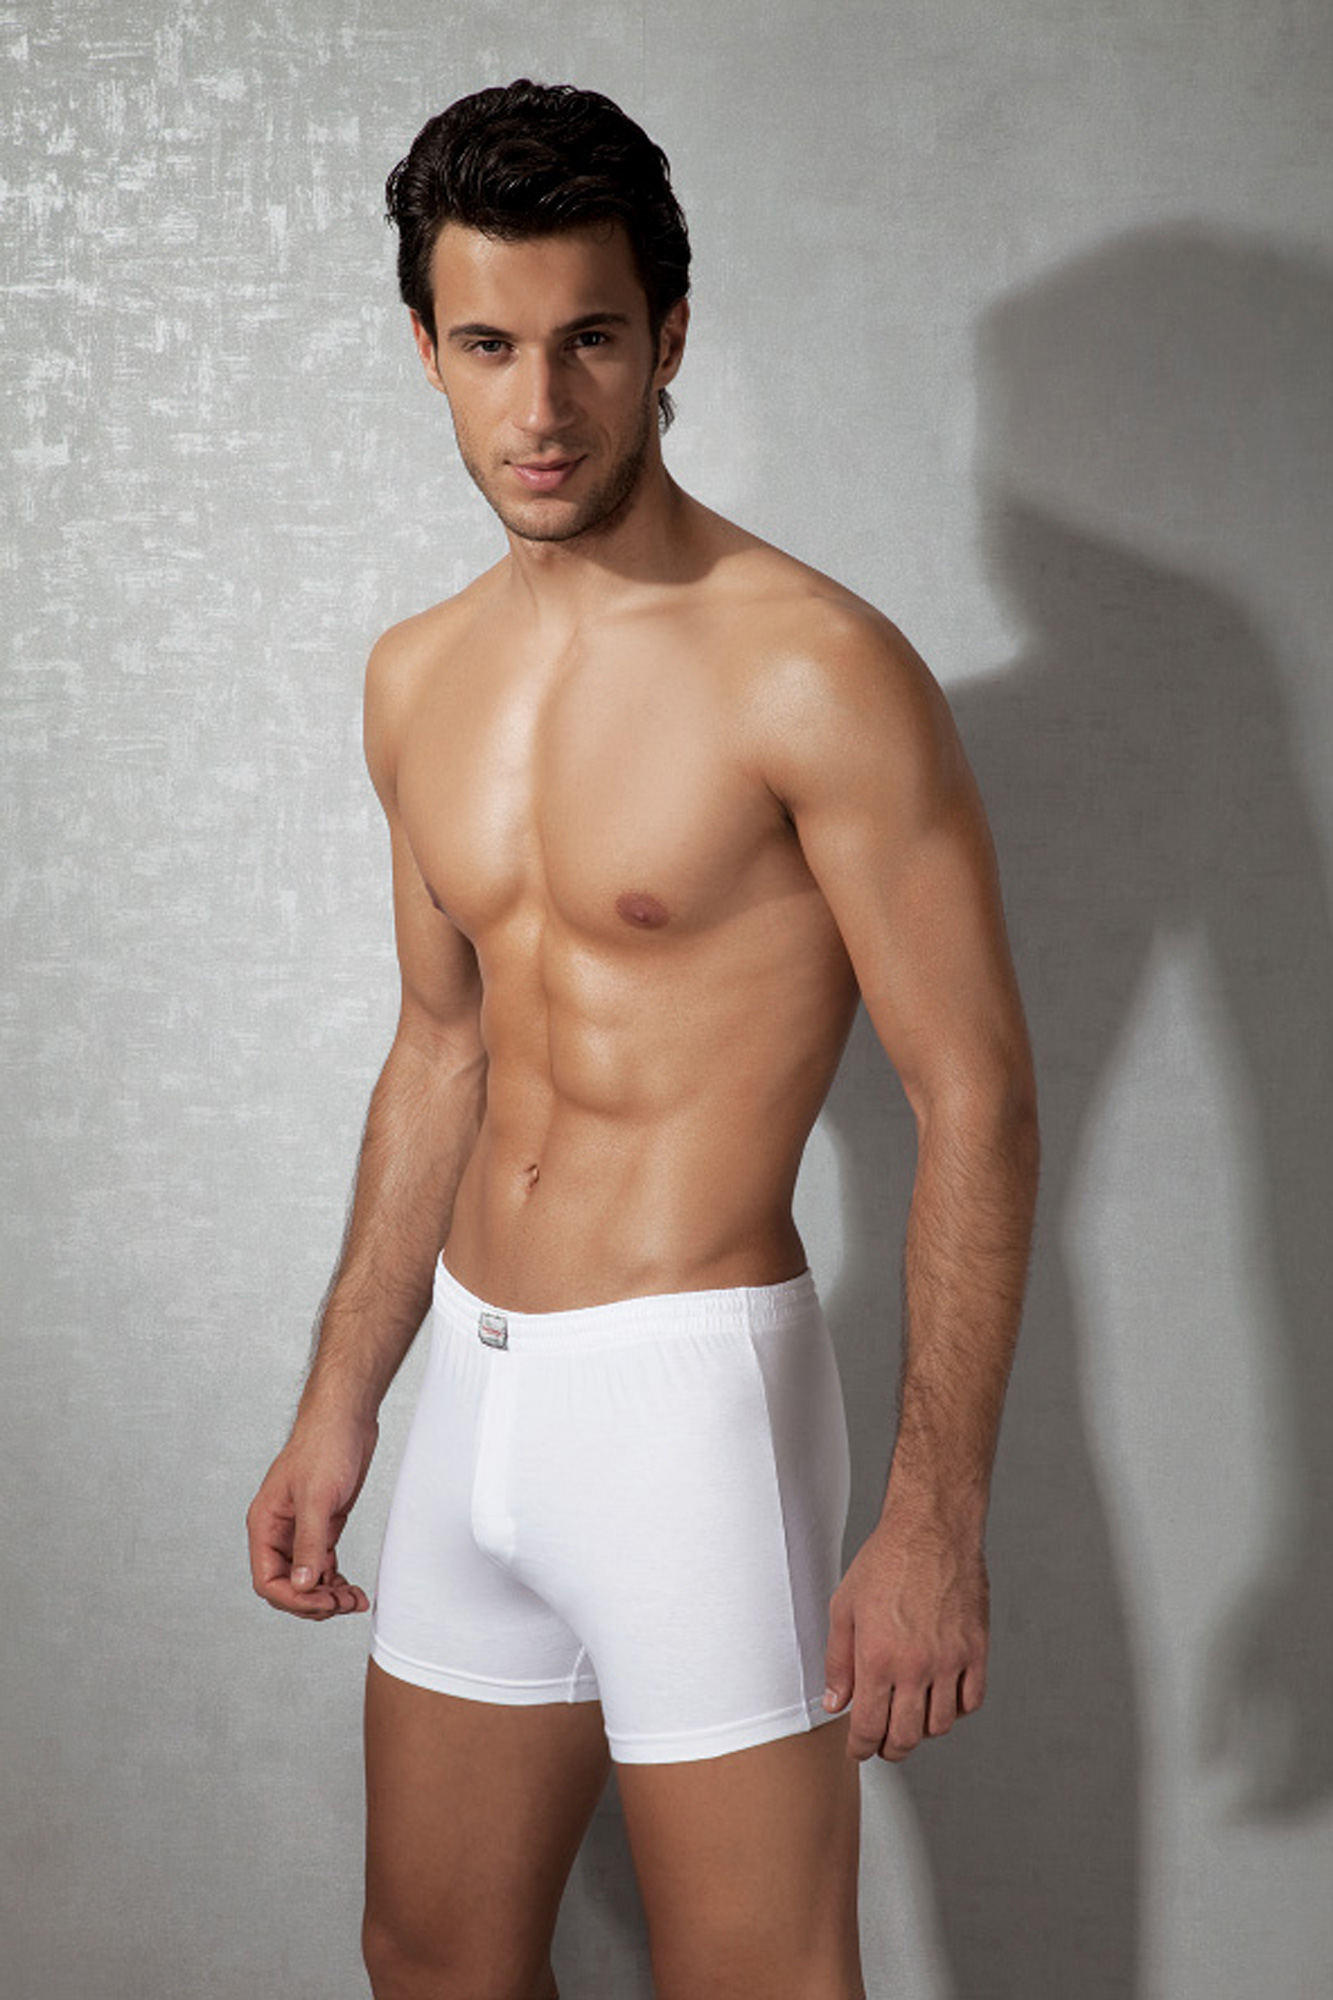 Men's shapewear is another great option to consider when looking for men's underwear. From sculpting shirts and slimming trunks to shape forming briefs and seamless tank tops, you'll find that every ensemble looks better when you wear toning and slimming shapewear underneath it.